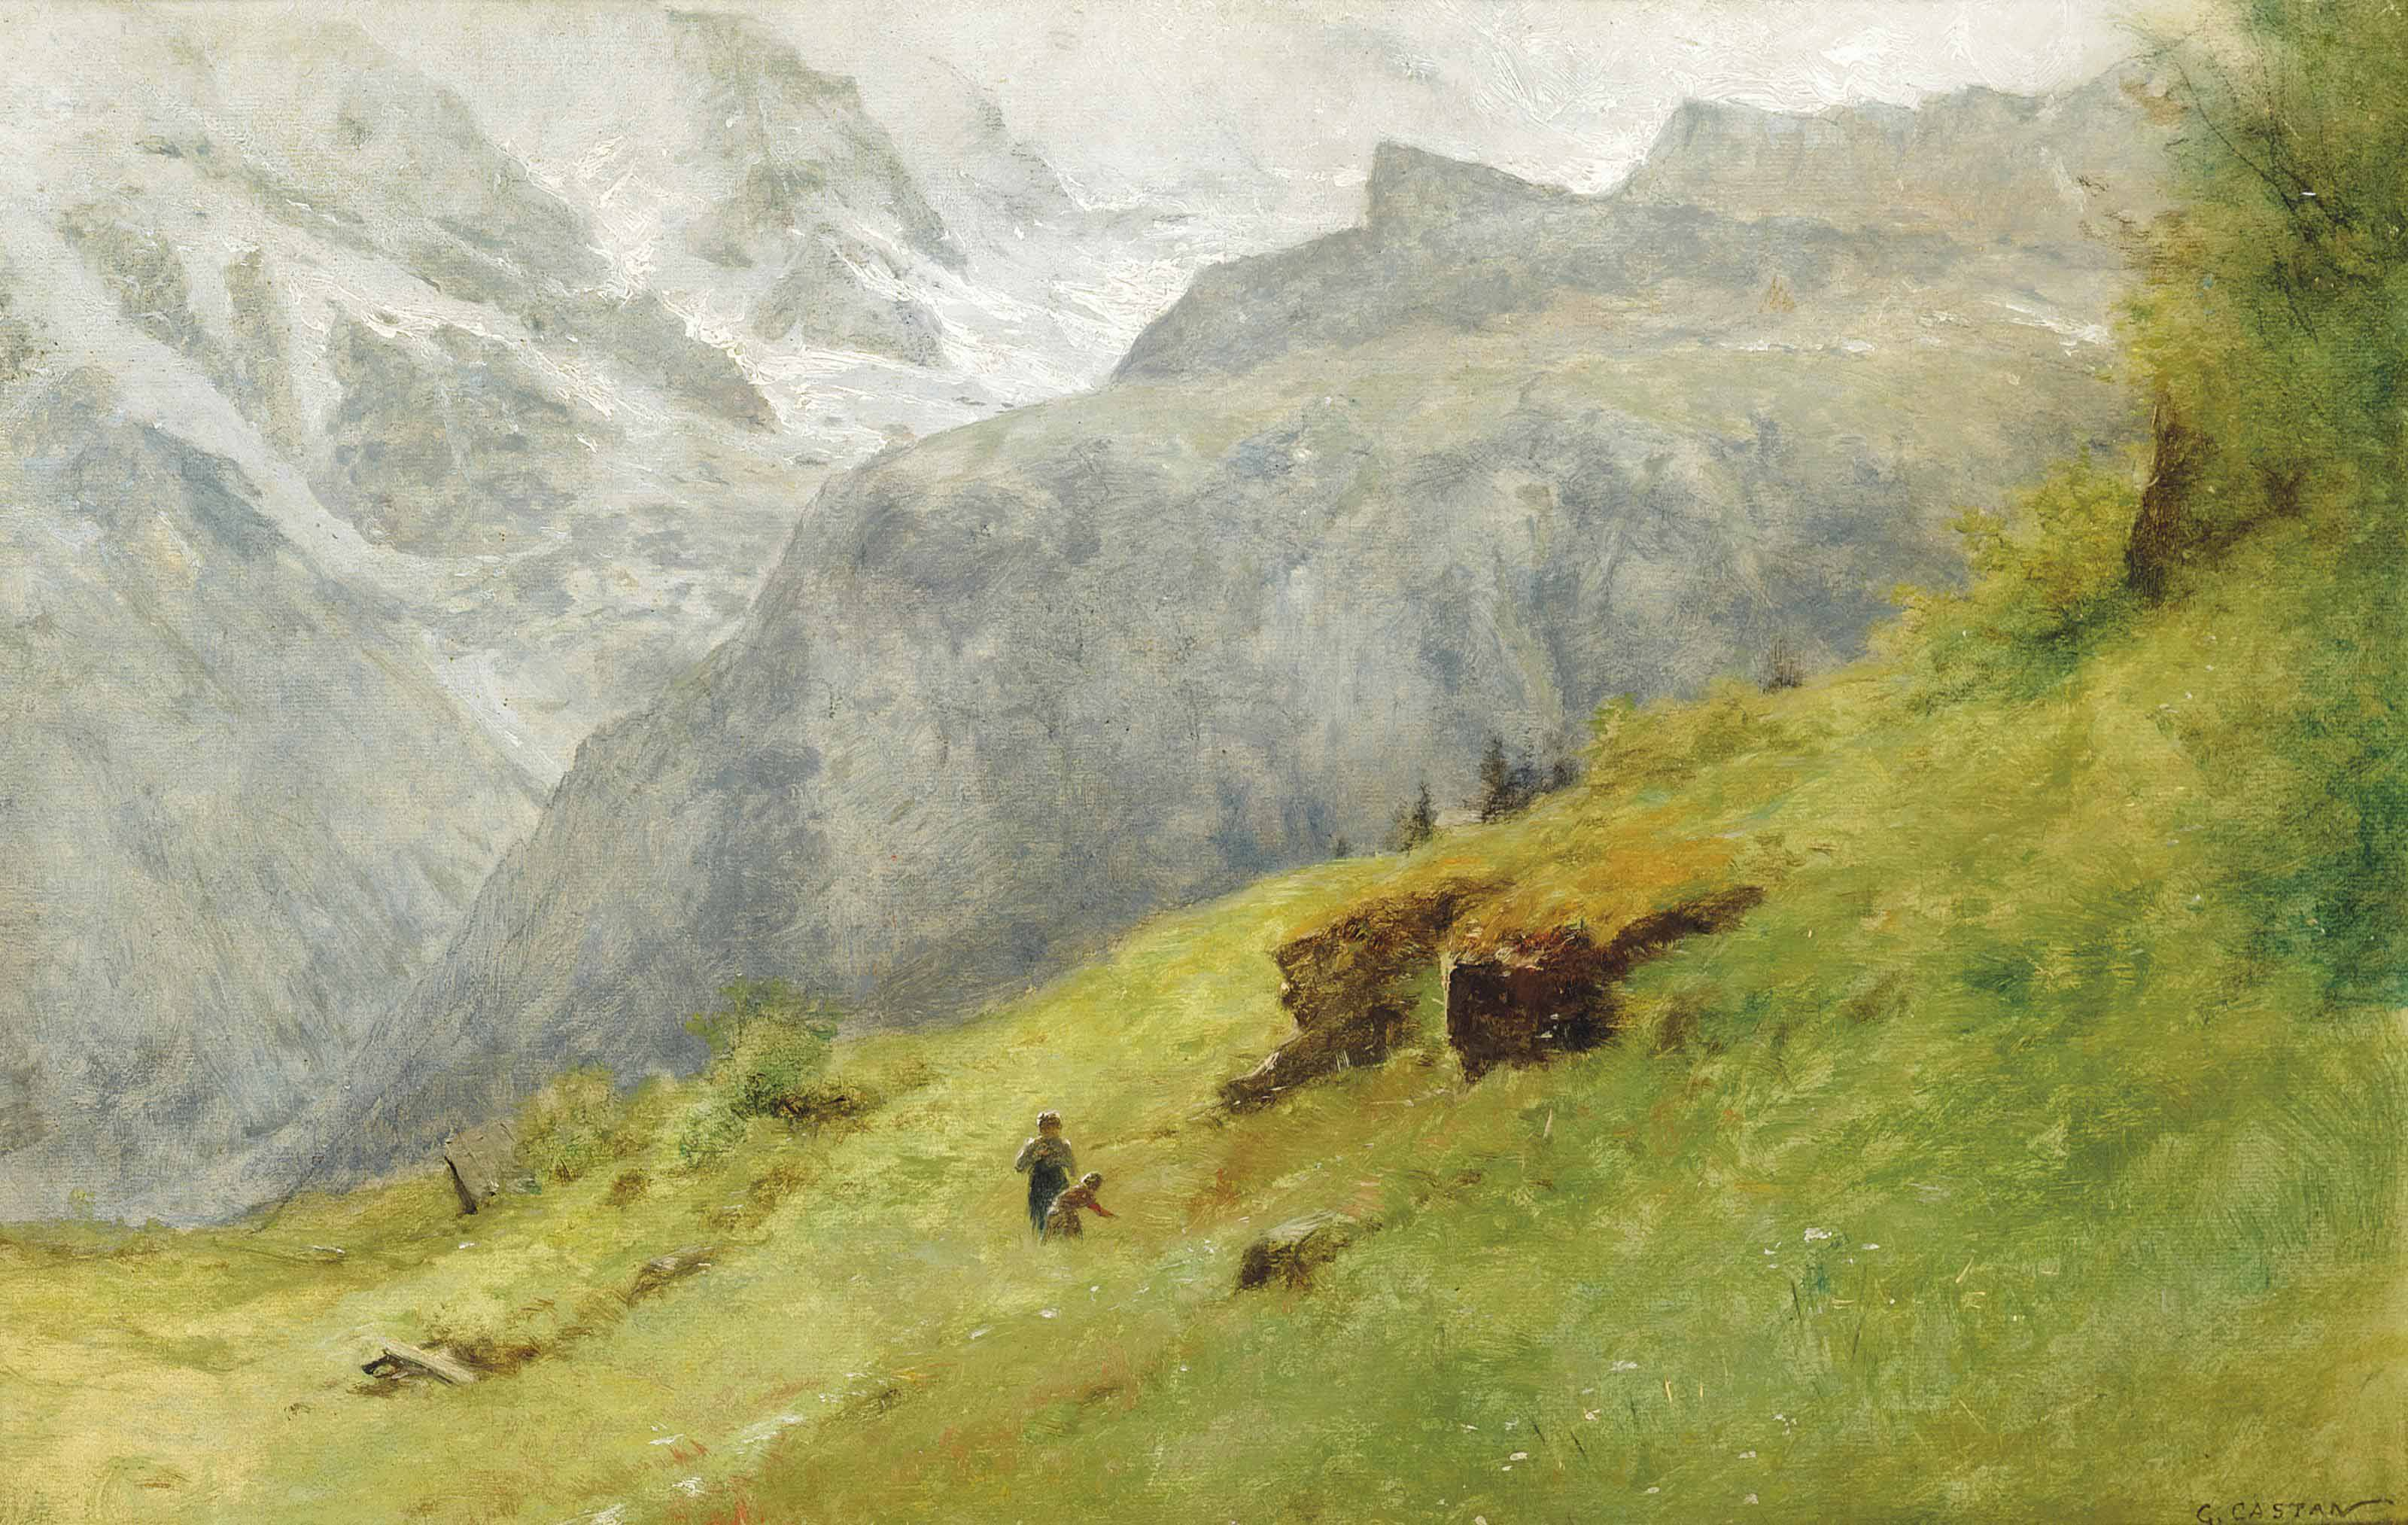 Children picking flowers in an Alpine landscape